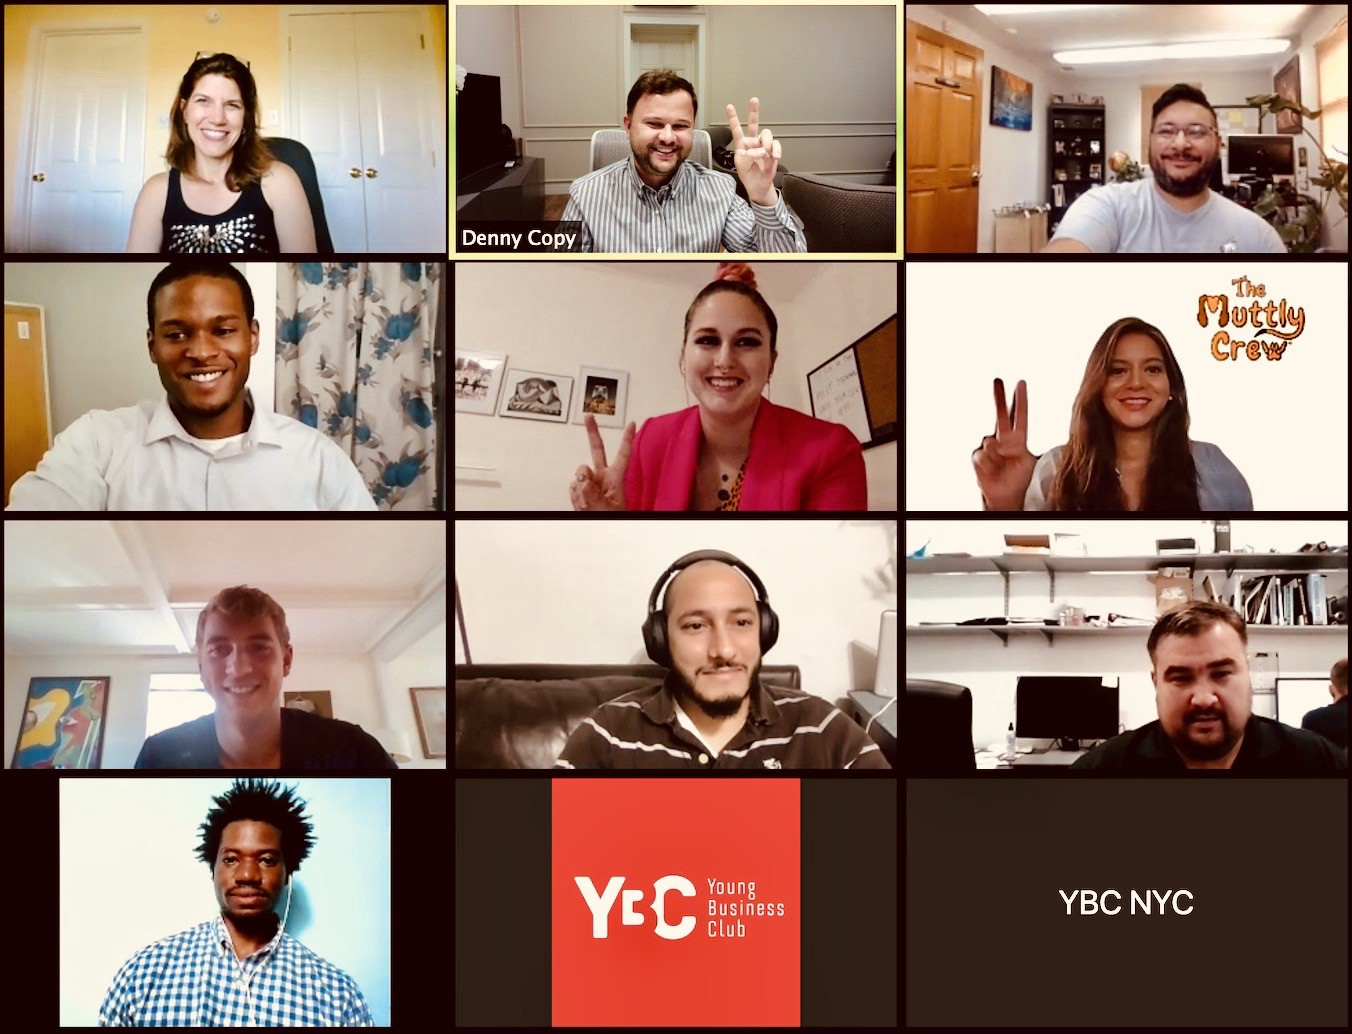 YBC NYC, Young Business Club of New York City